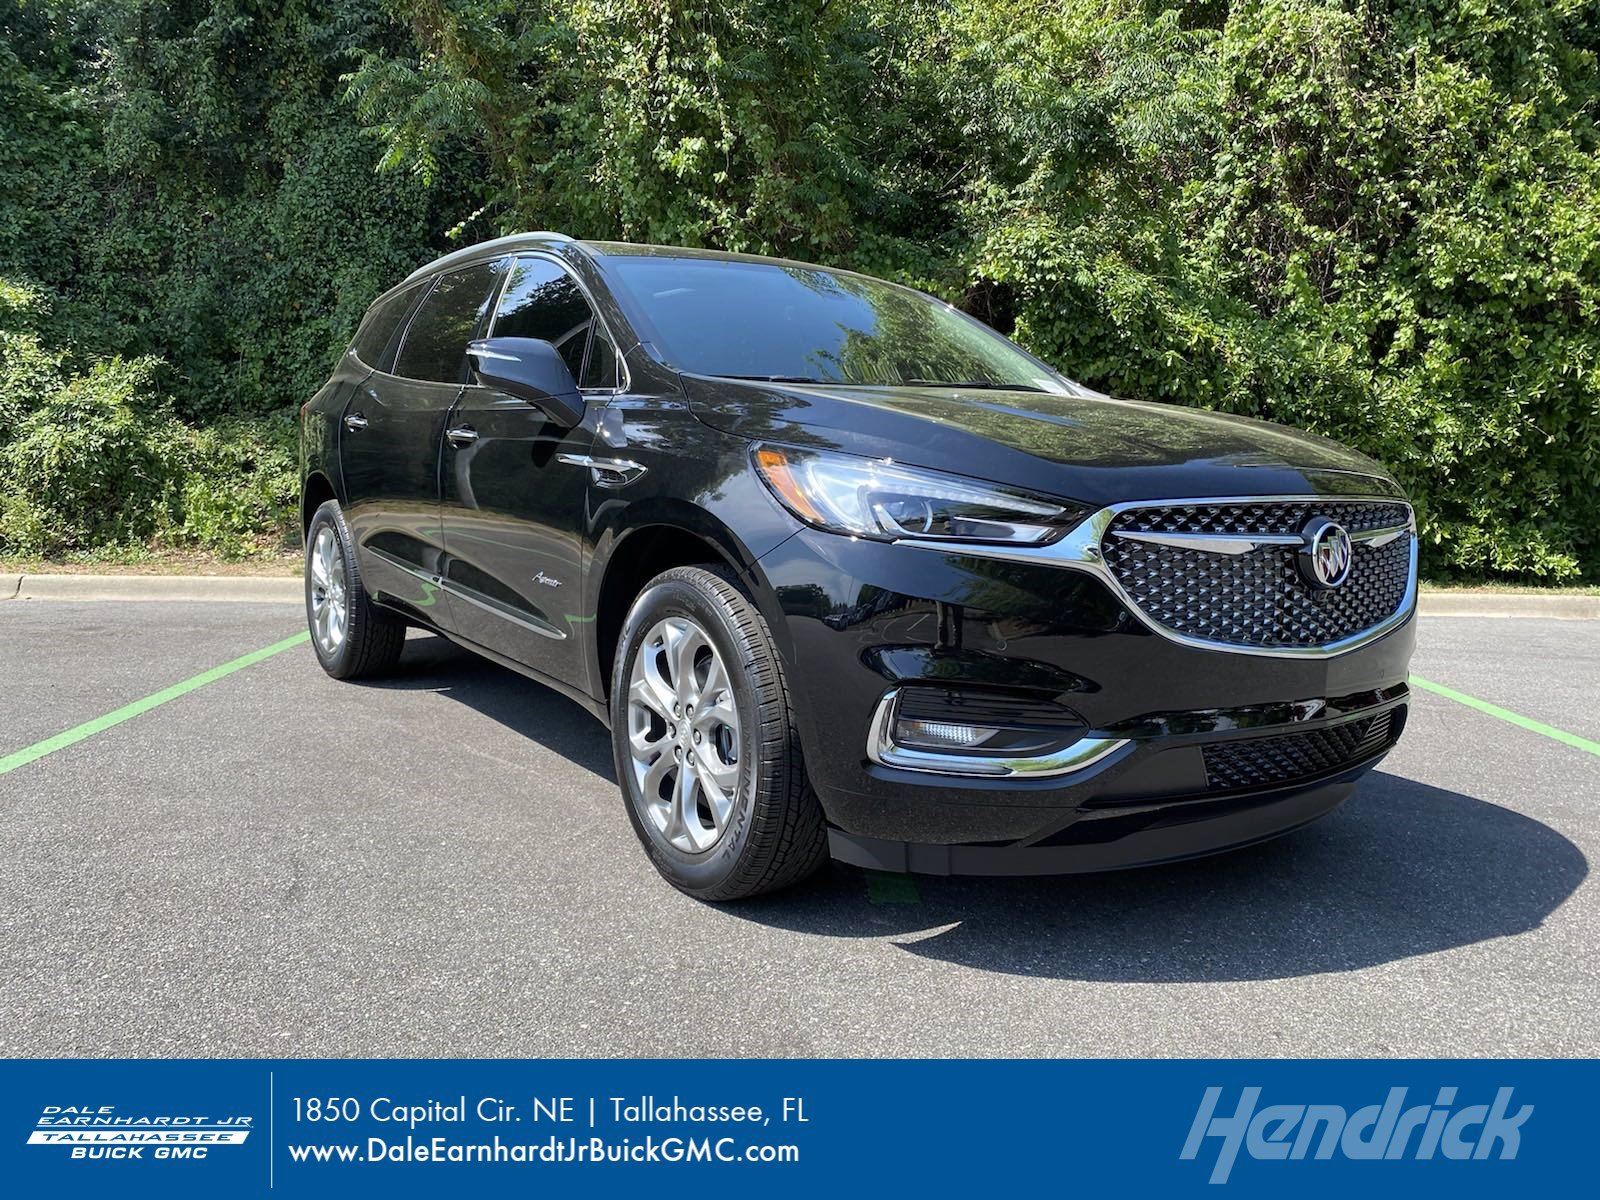 New 2020 Buick Enclave Premium Suv In Tallahassee #lj243994 2022 Buick Enclave Avenir Interior Colors, Brochure, Build